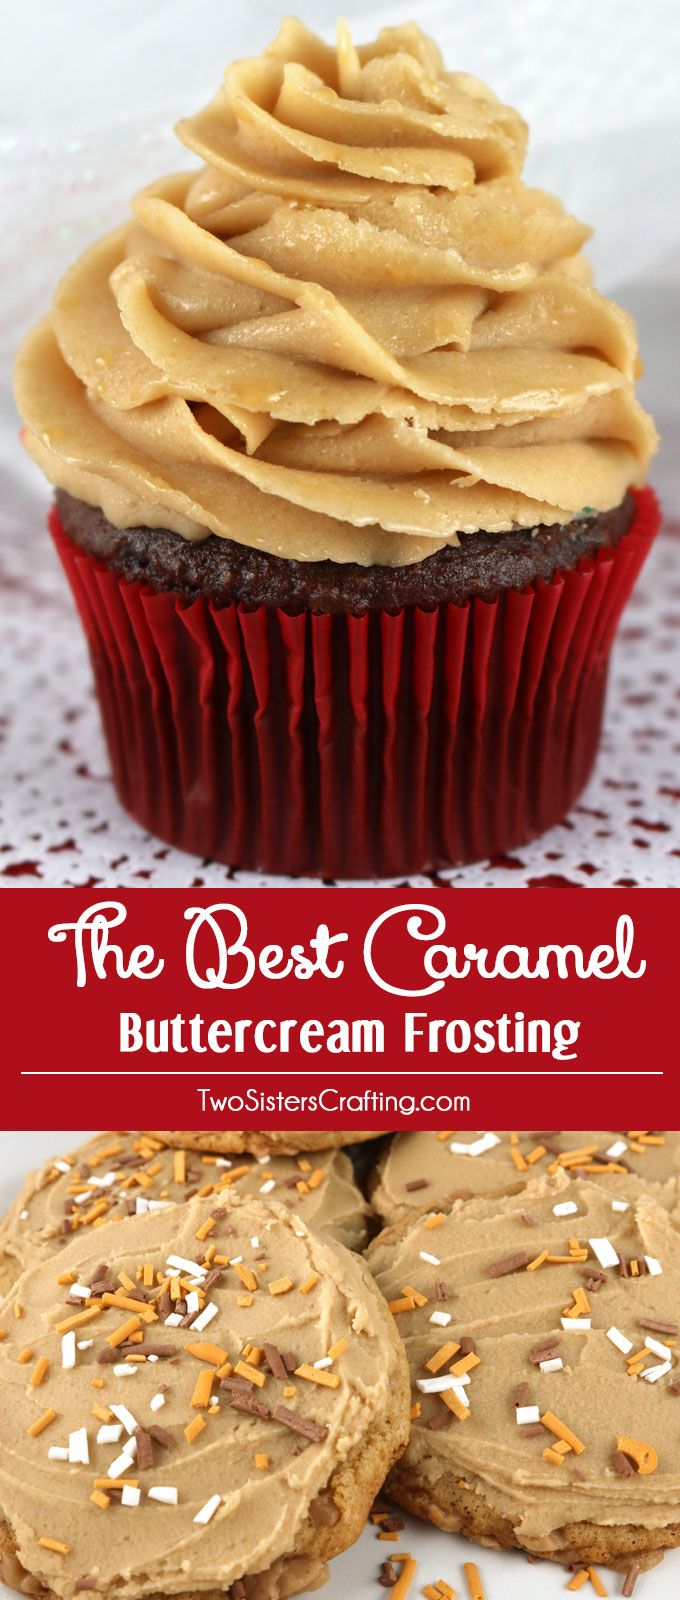 the best caramel buttercream frosting rezept two sisters crafting blog pinterest kuchen. Black Bedroom Furniture Sets. Home Design Ideas